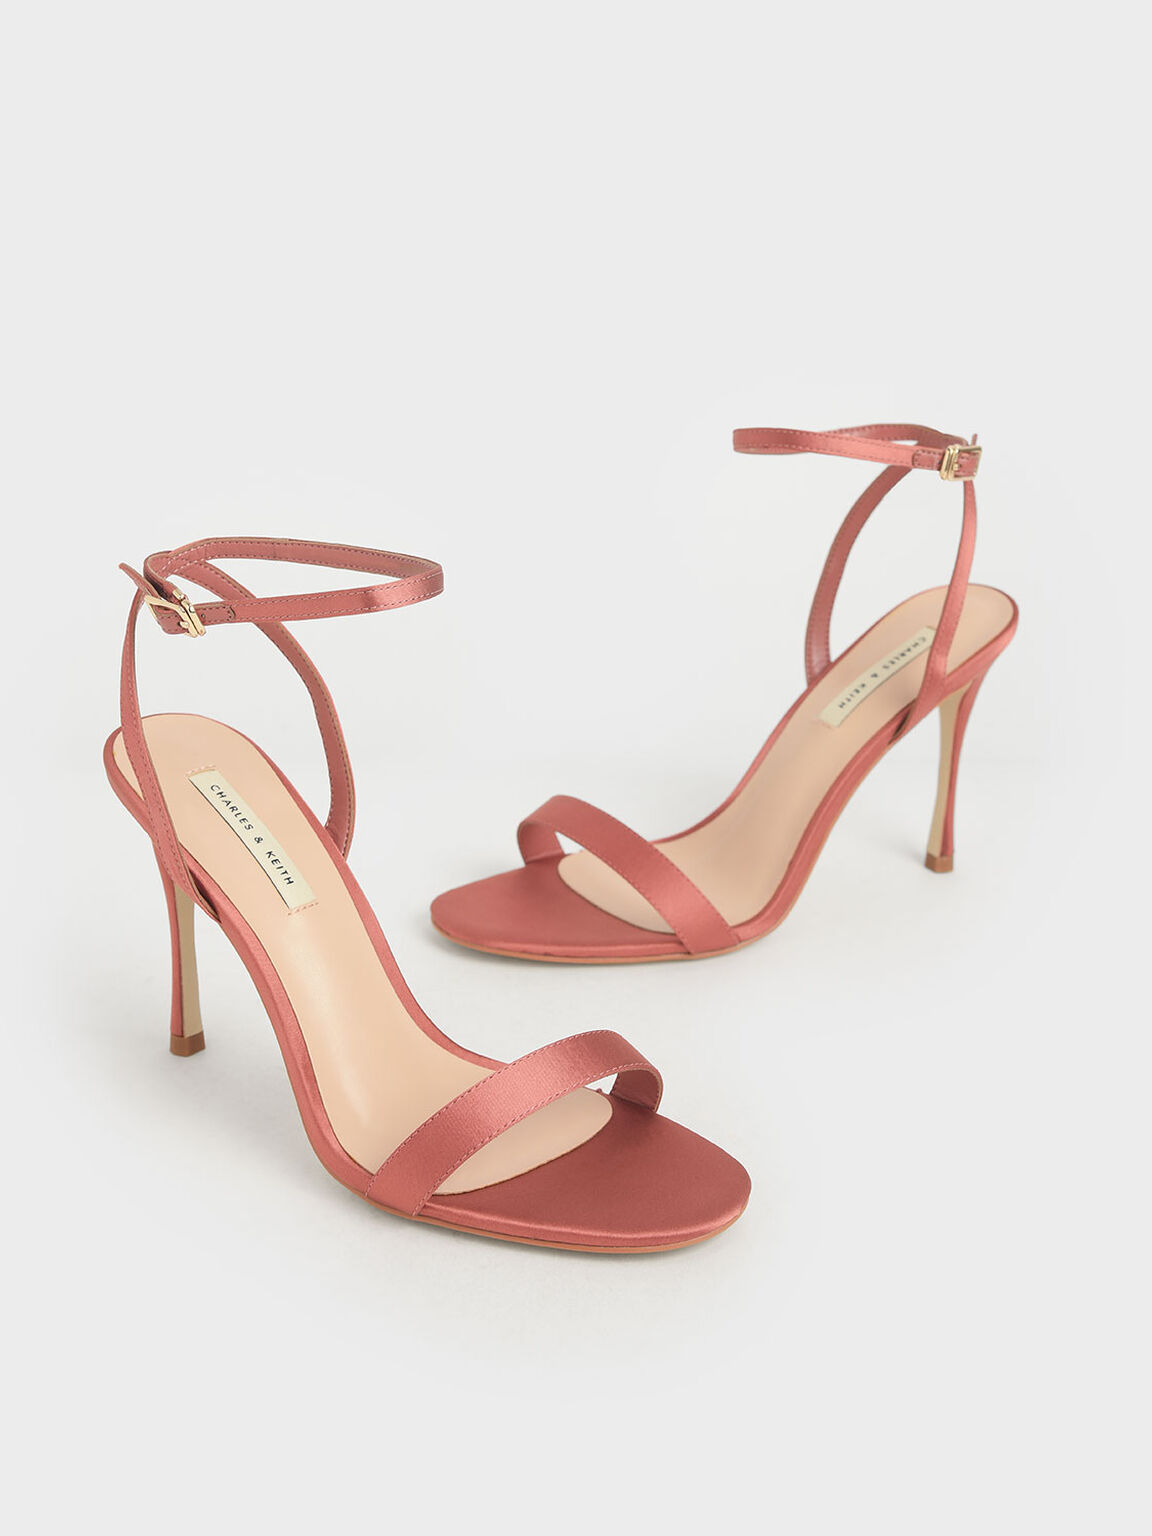 Satin Stiletto Heels, Pink, hi-res